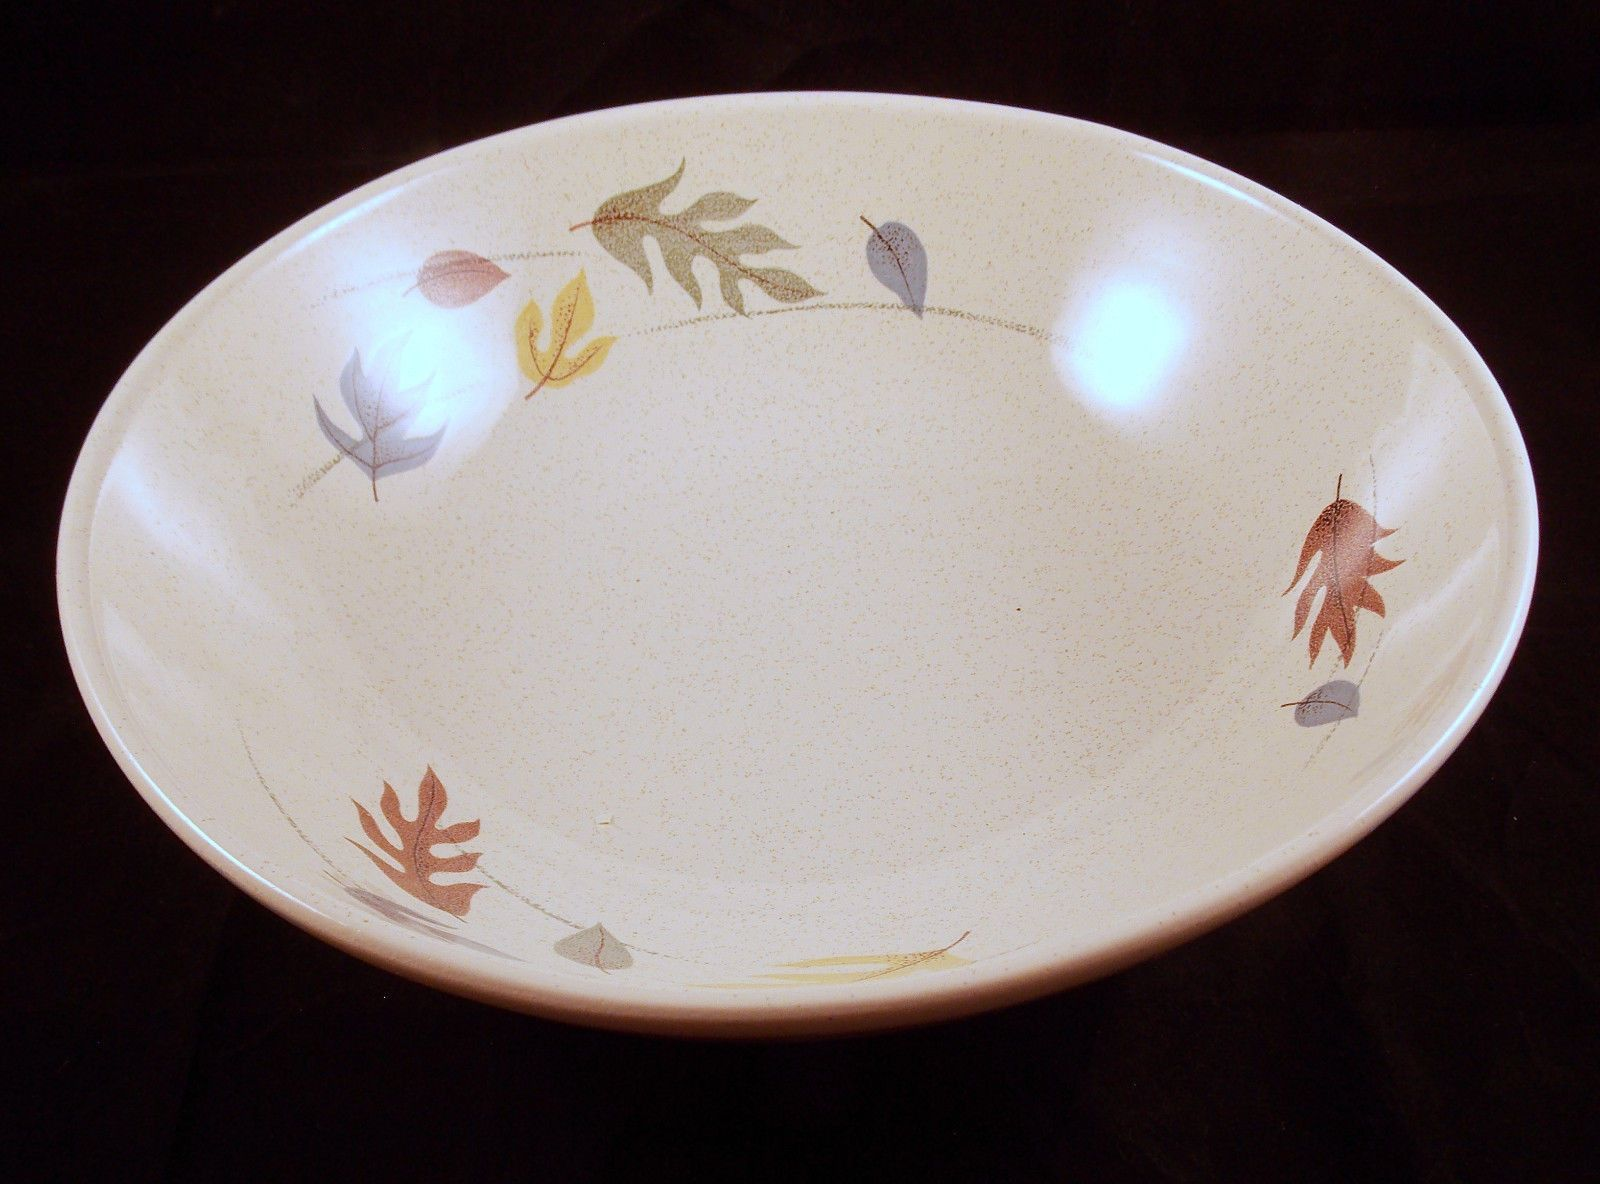 Vintage Franciscan Serving Bowl 9 Inch Round Autumn Leaves Earthenware